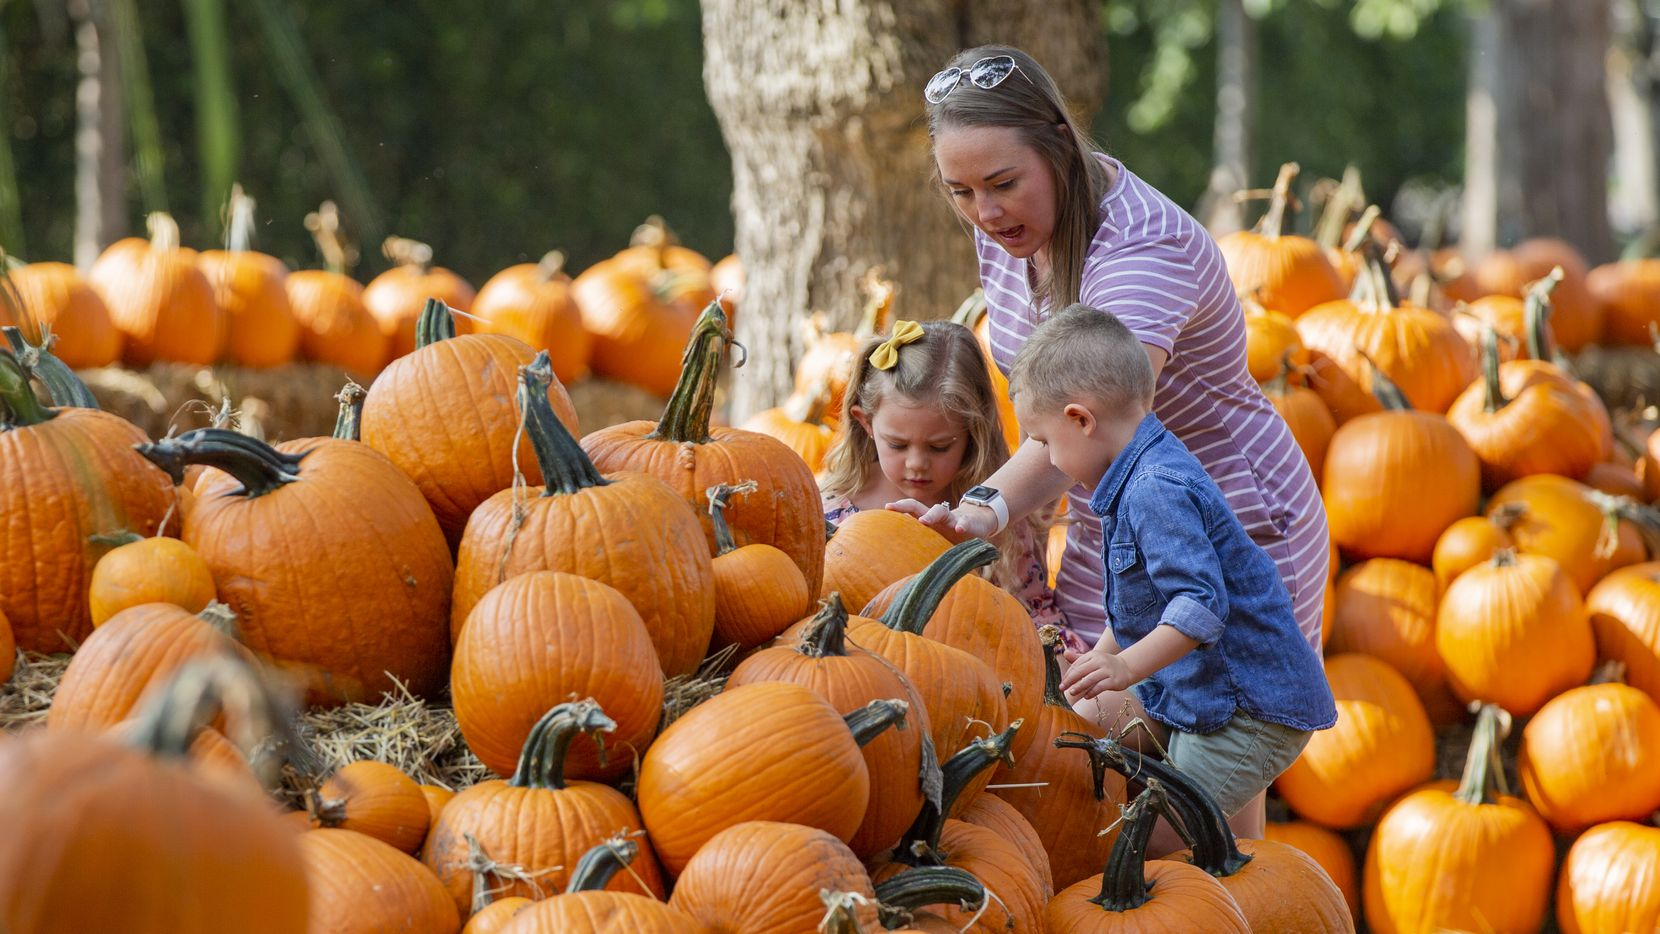 Heather Torregrossa from Frisco and her children, Emerson, 5, and Lennon, 3, look at pumpkins in the Dallas Arboretum's Pumpkin Village on Sept. 18, 2020 in Dallas. Peerless Production Group's Frights'n Lights Frisco will feature thousands of hand-carved jack-o-lanterns at Riders Field in Frisco this fall.